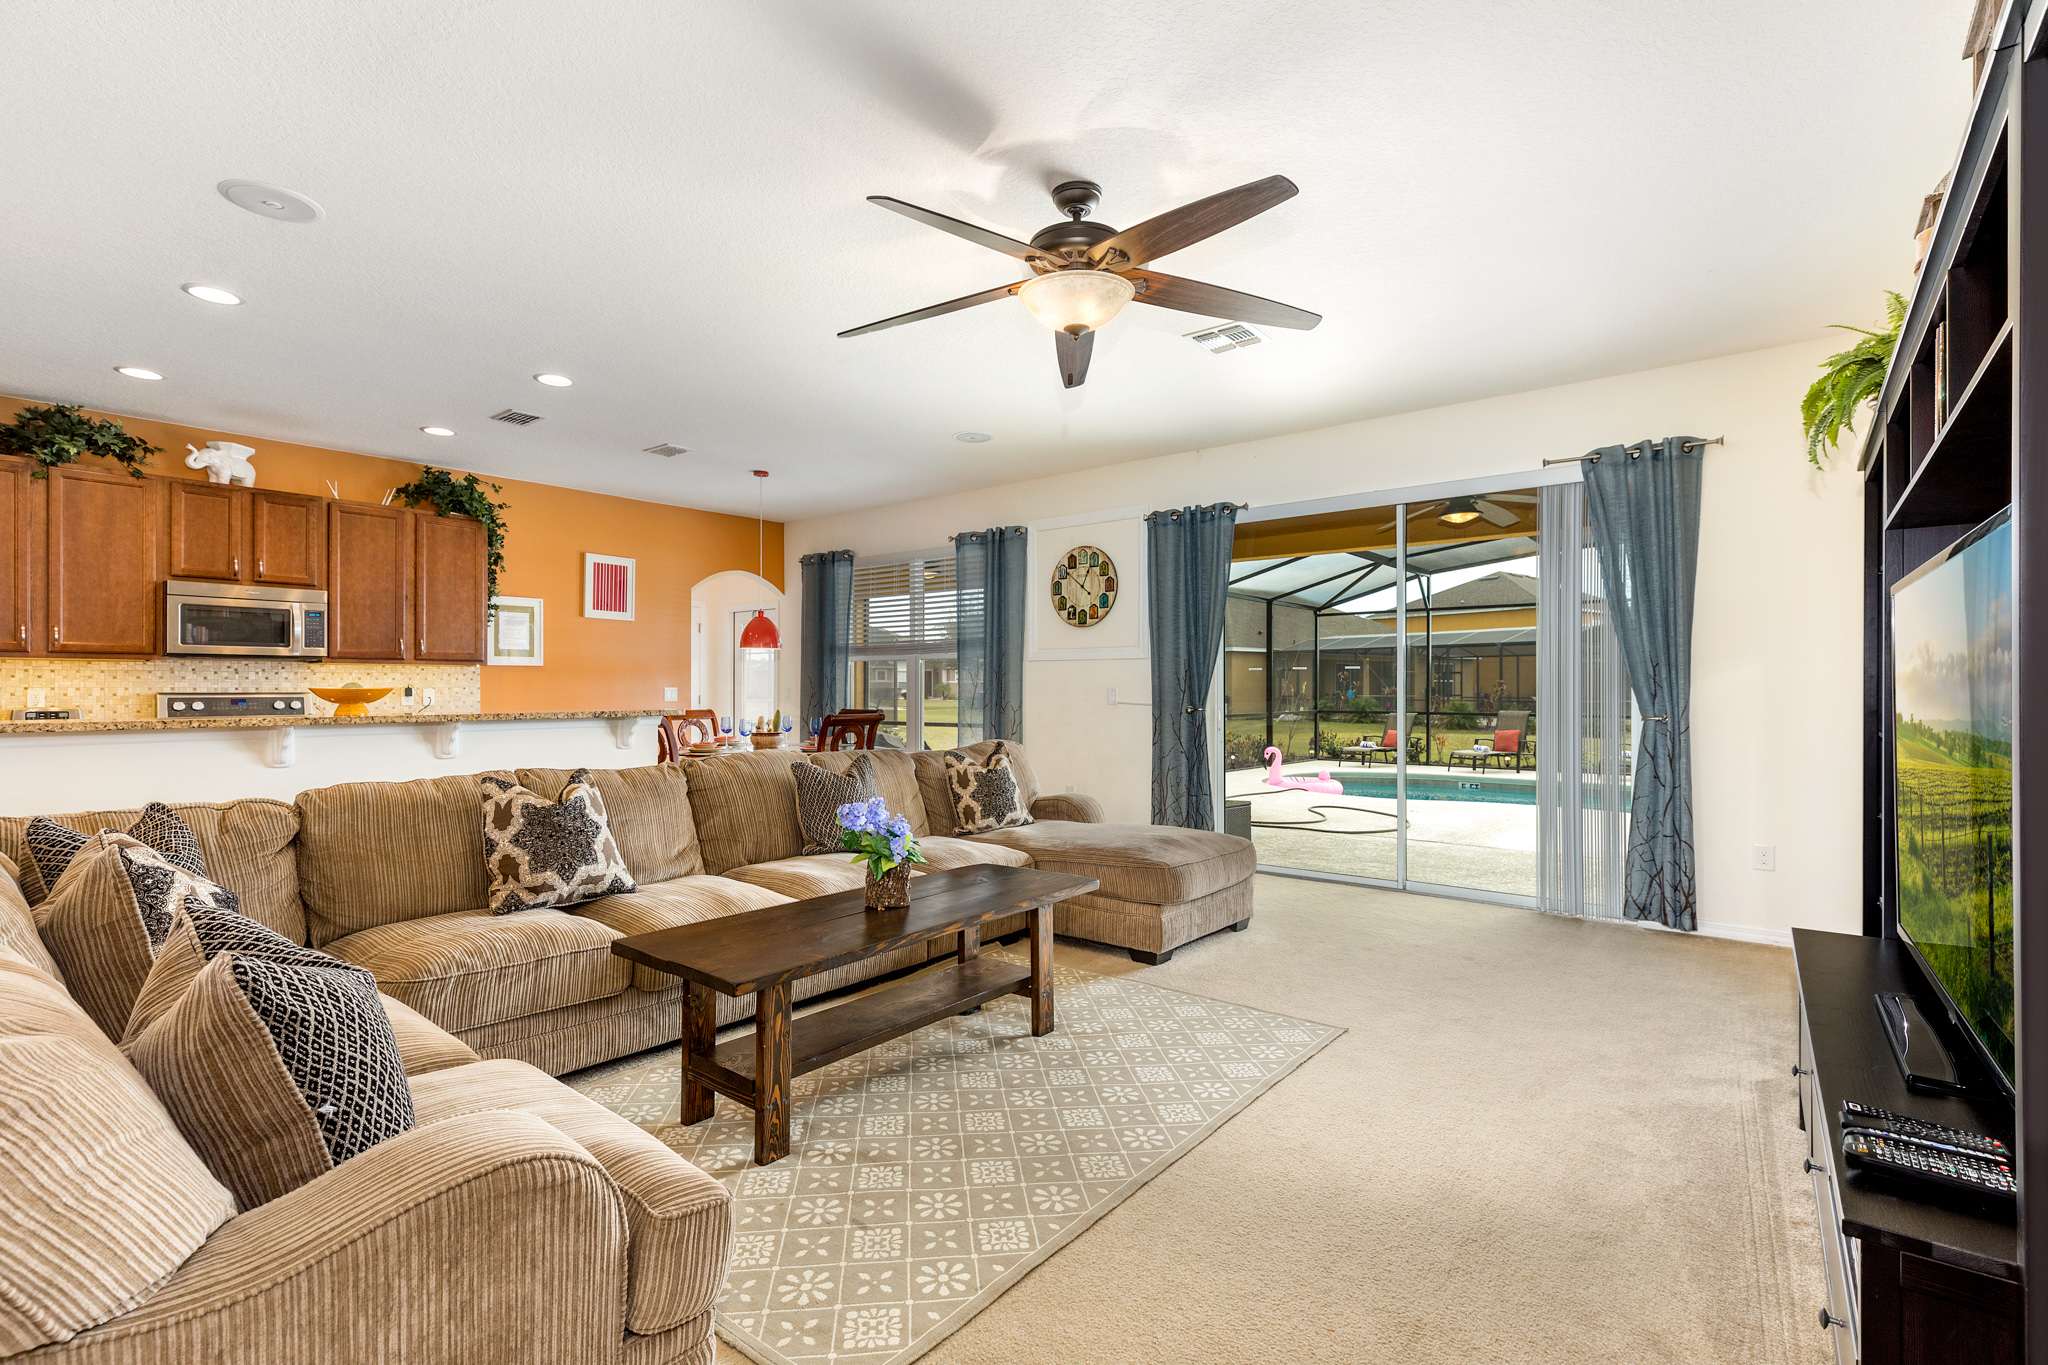 Watersong Resort/NW5984-146047